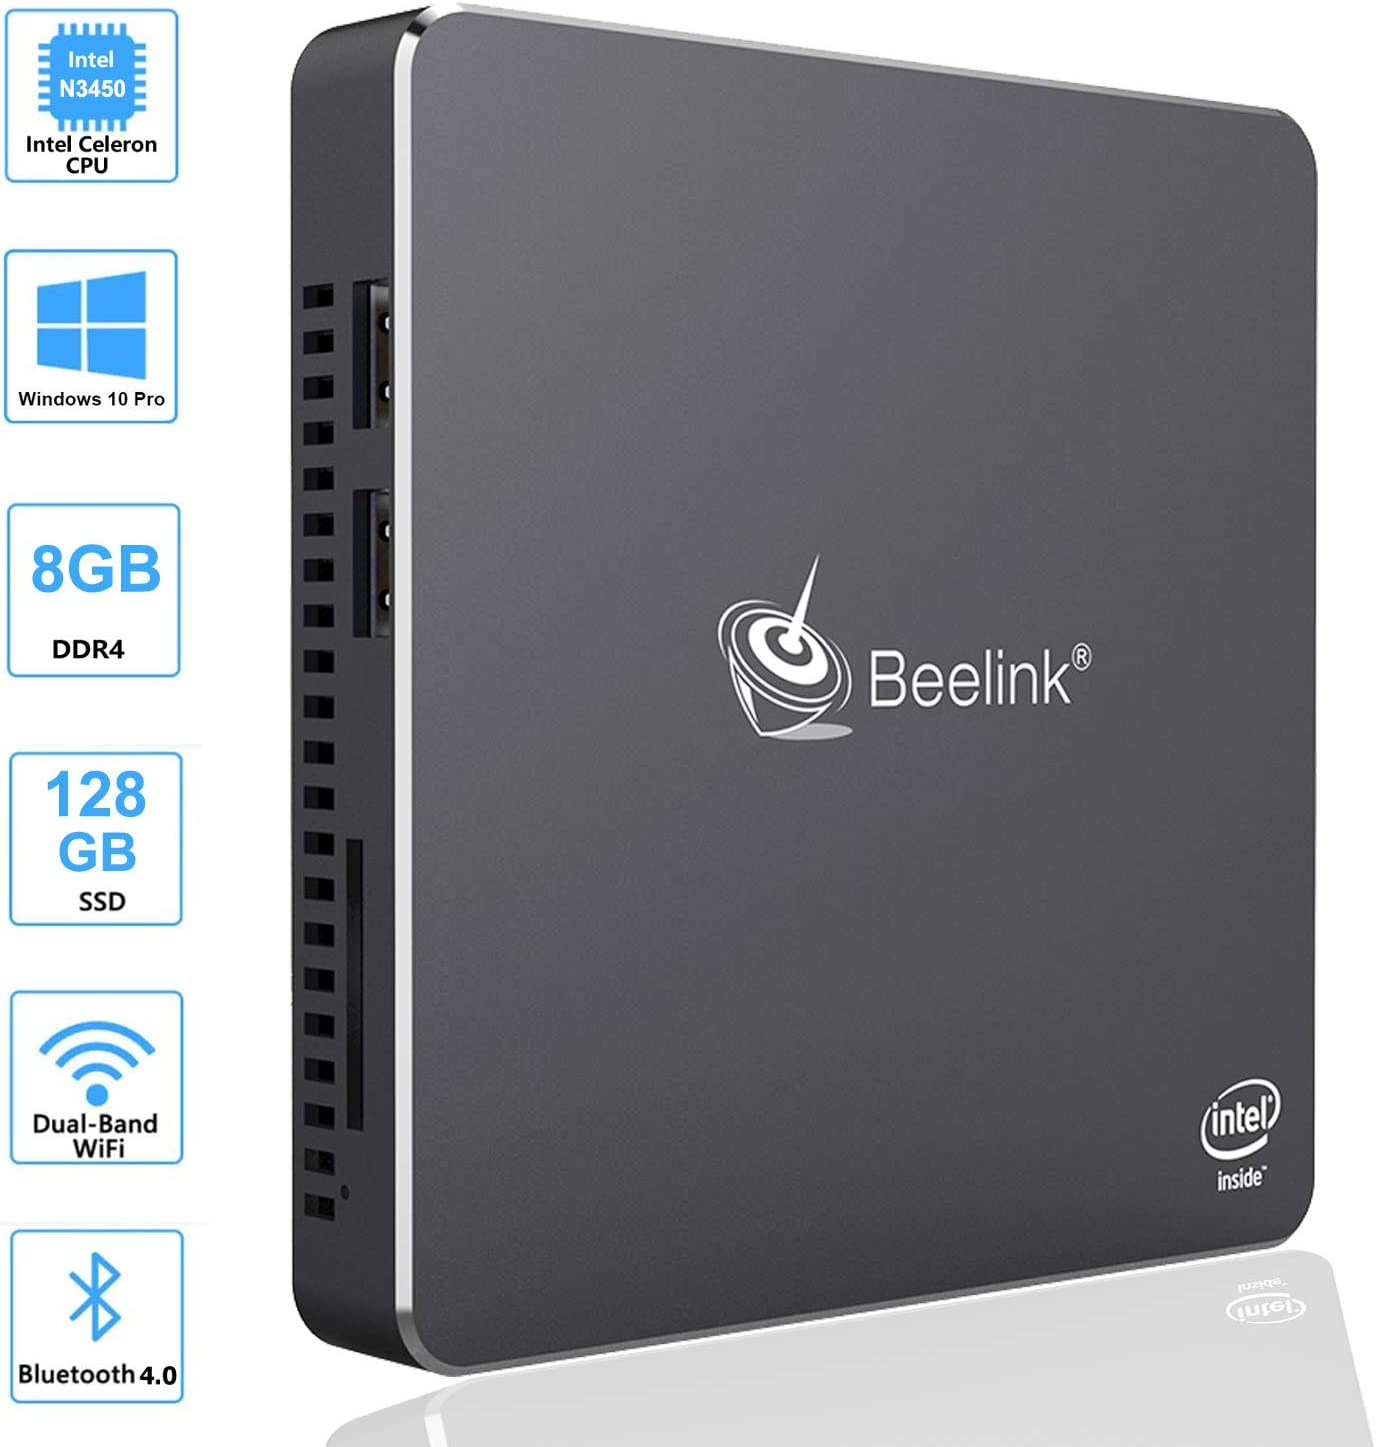 Beelink T34 Mini Pc Quad Core Intel Celeron N3450 Processor, Windows 10 Pro Mini Desktop Computer, 8GB DDR3/128GB SSD, 2.4G/5G Dual WiFi, Gigabit Ethernet, 4K HD Dual HDMI Ports, BT4.0